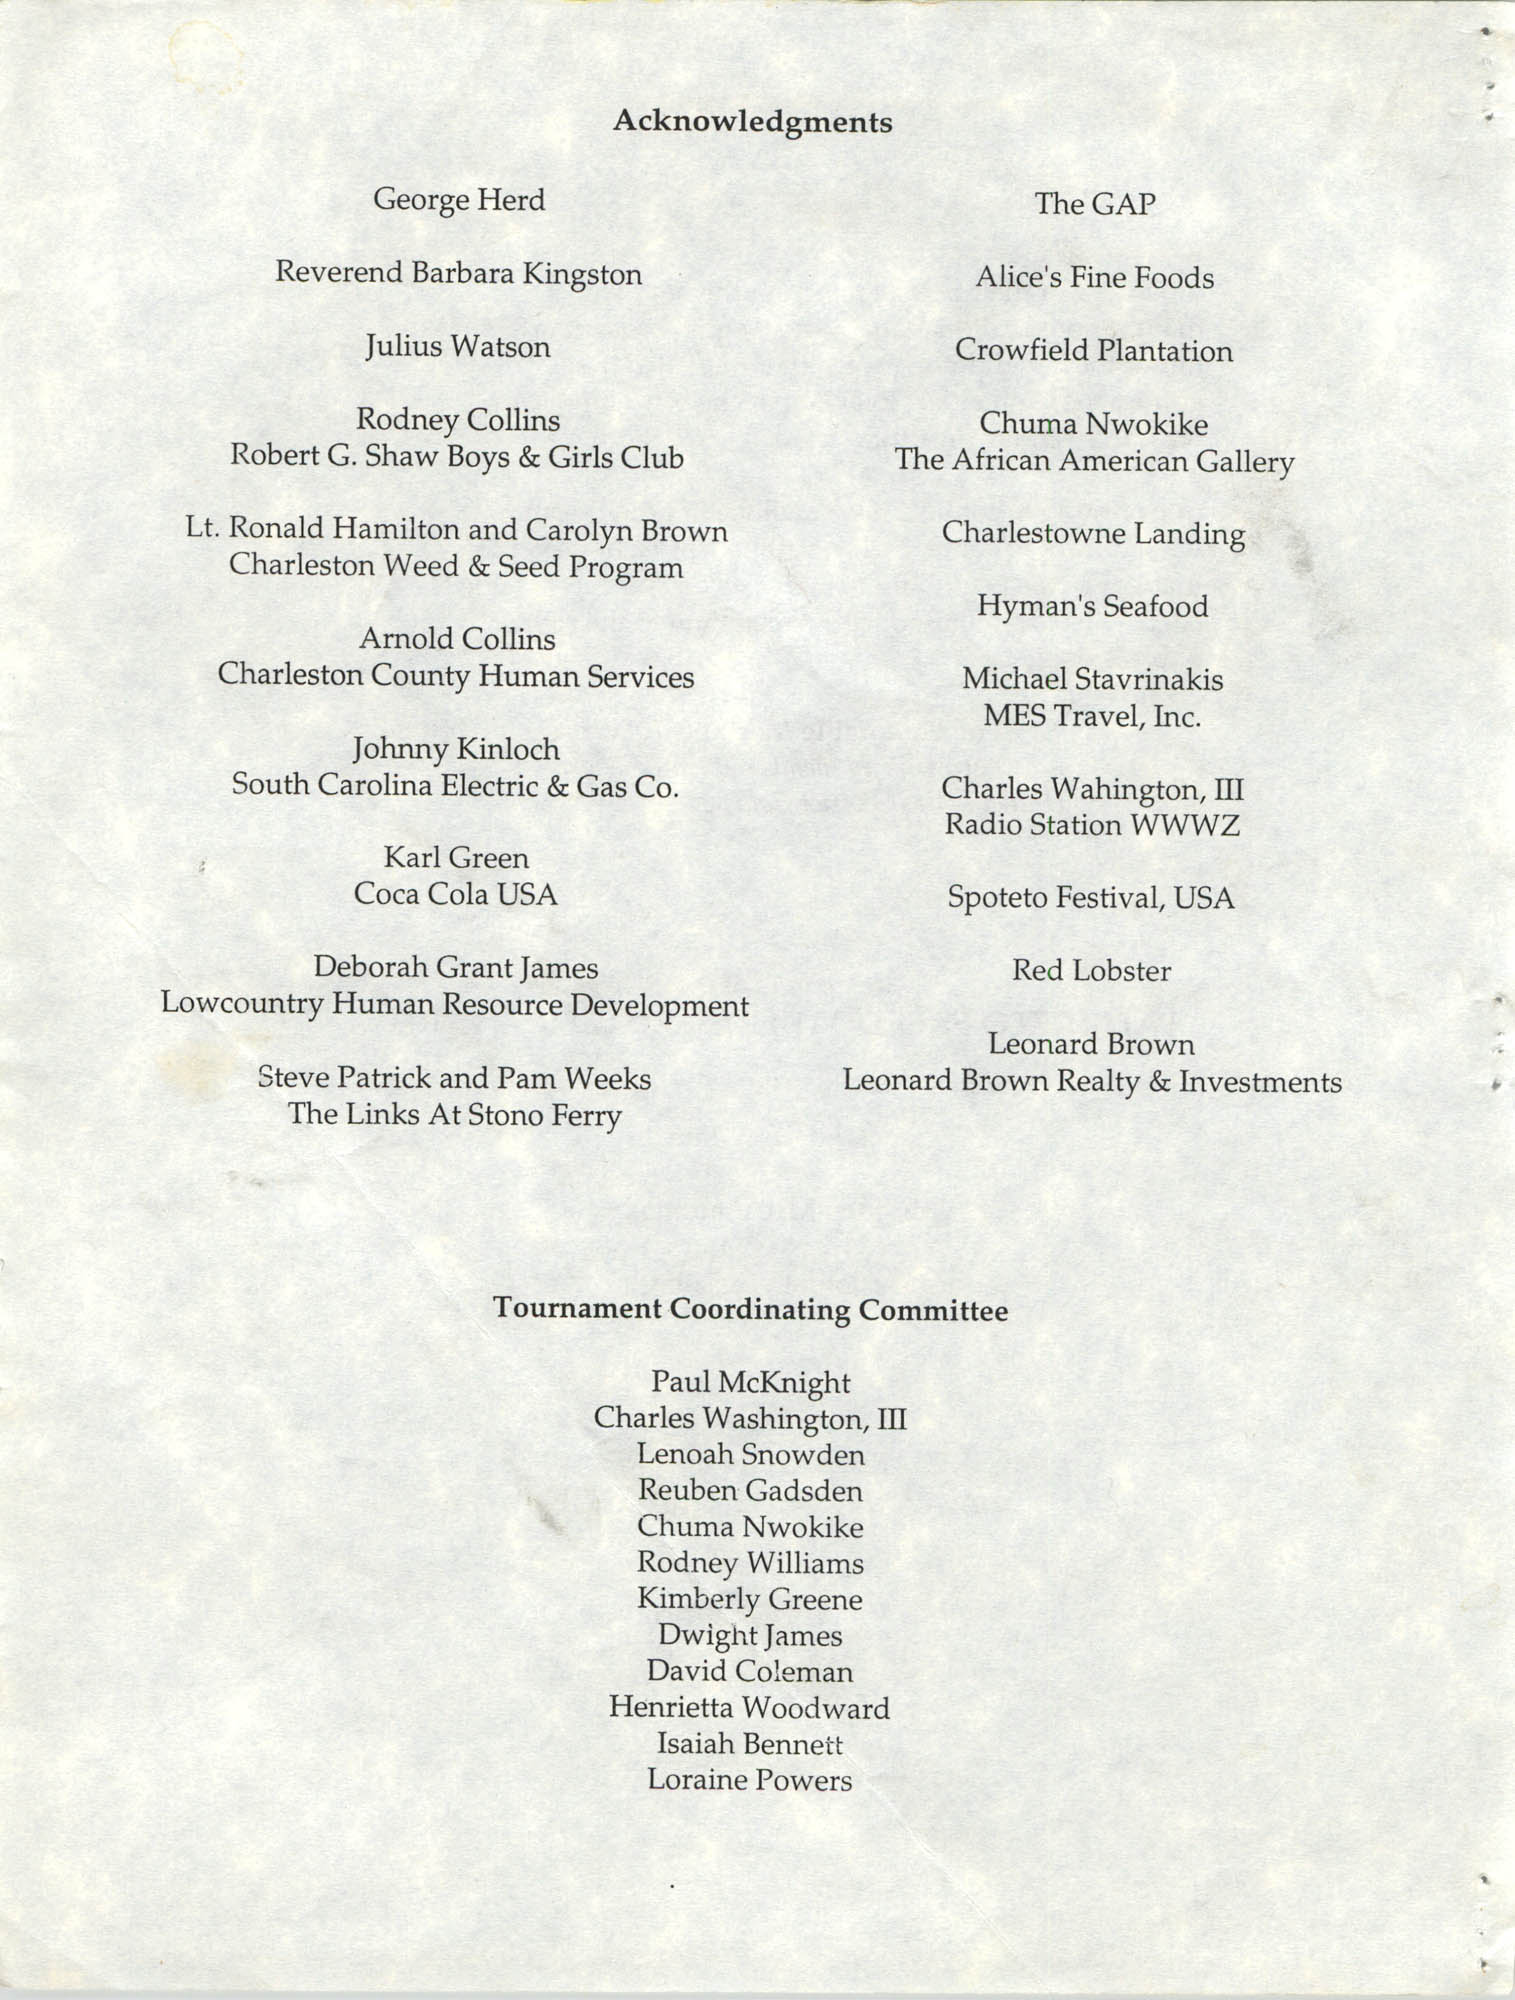 1st Annual NAACP Spring Invitational Golf Classic Awards Ceremony and Reception, NAACP, 1993, Page 3